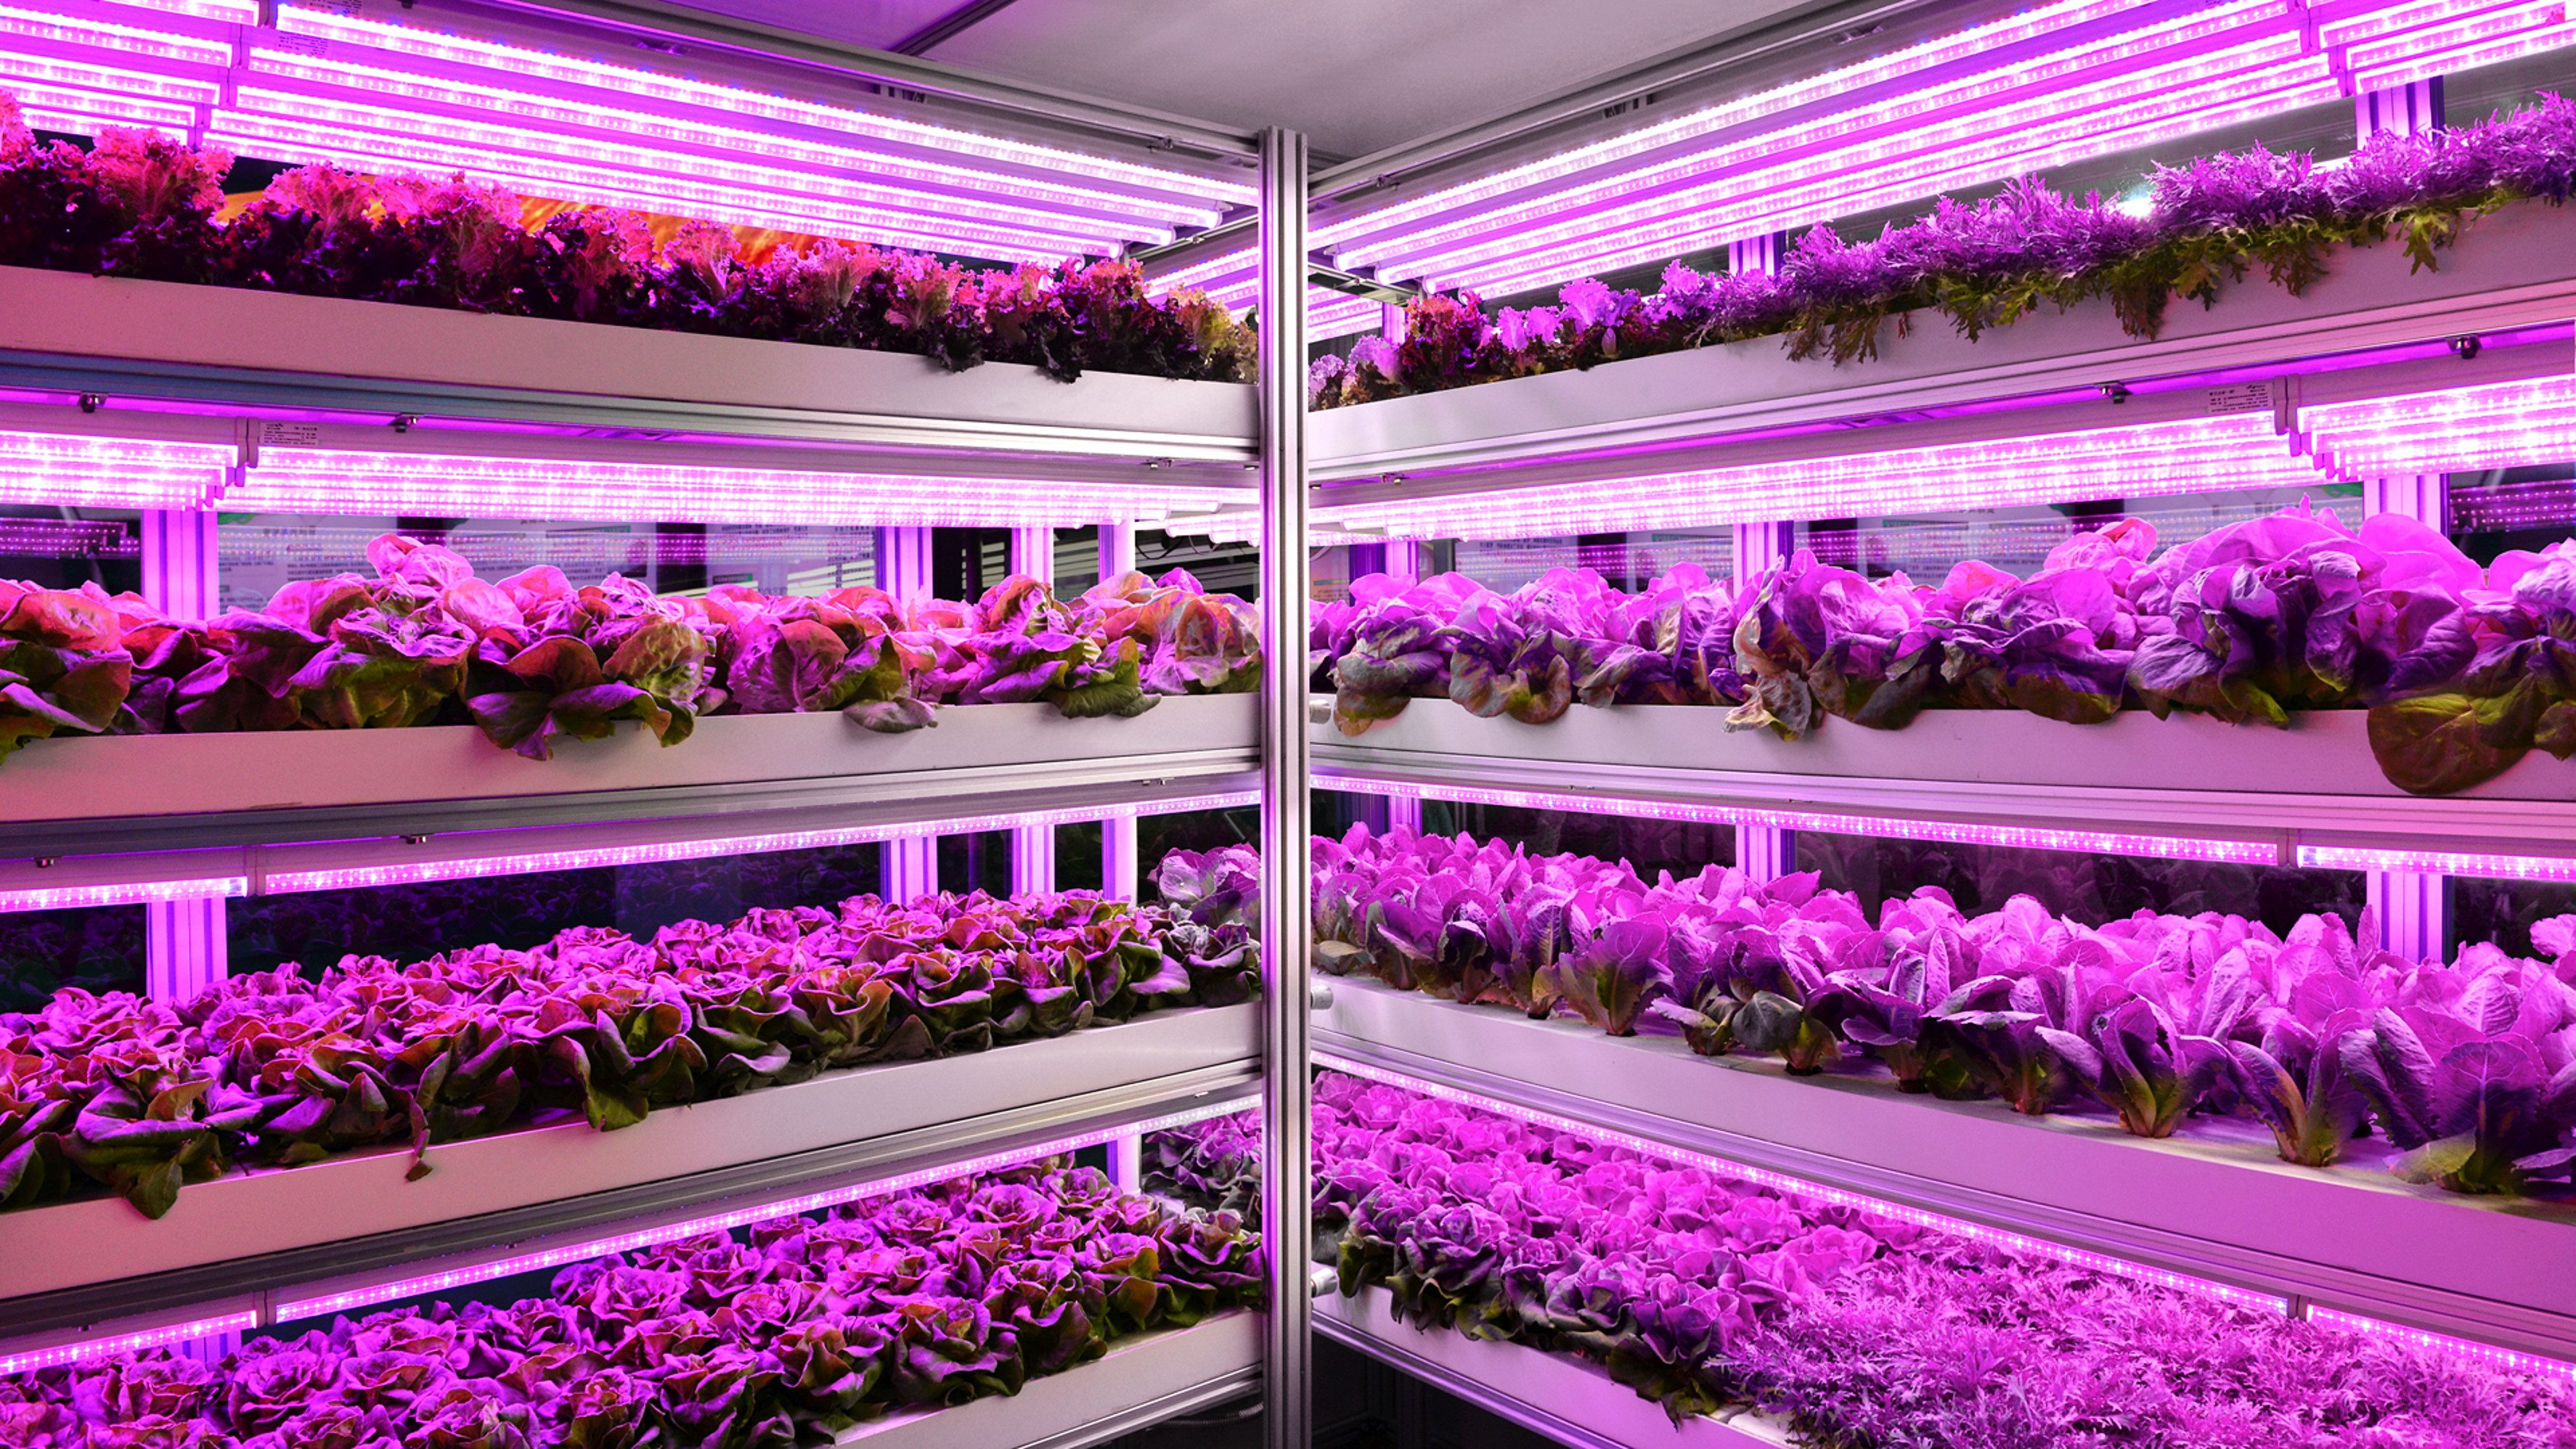 Zukunftstrend Vertical Farming (Multilayer Lighting)